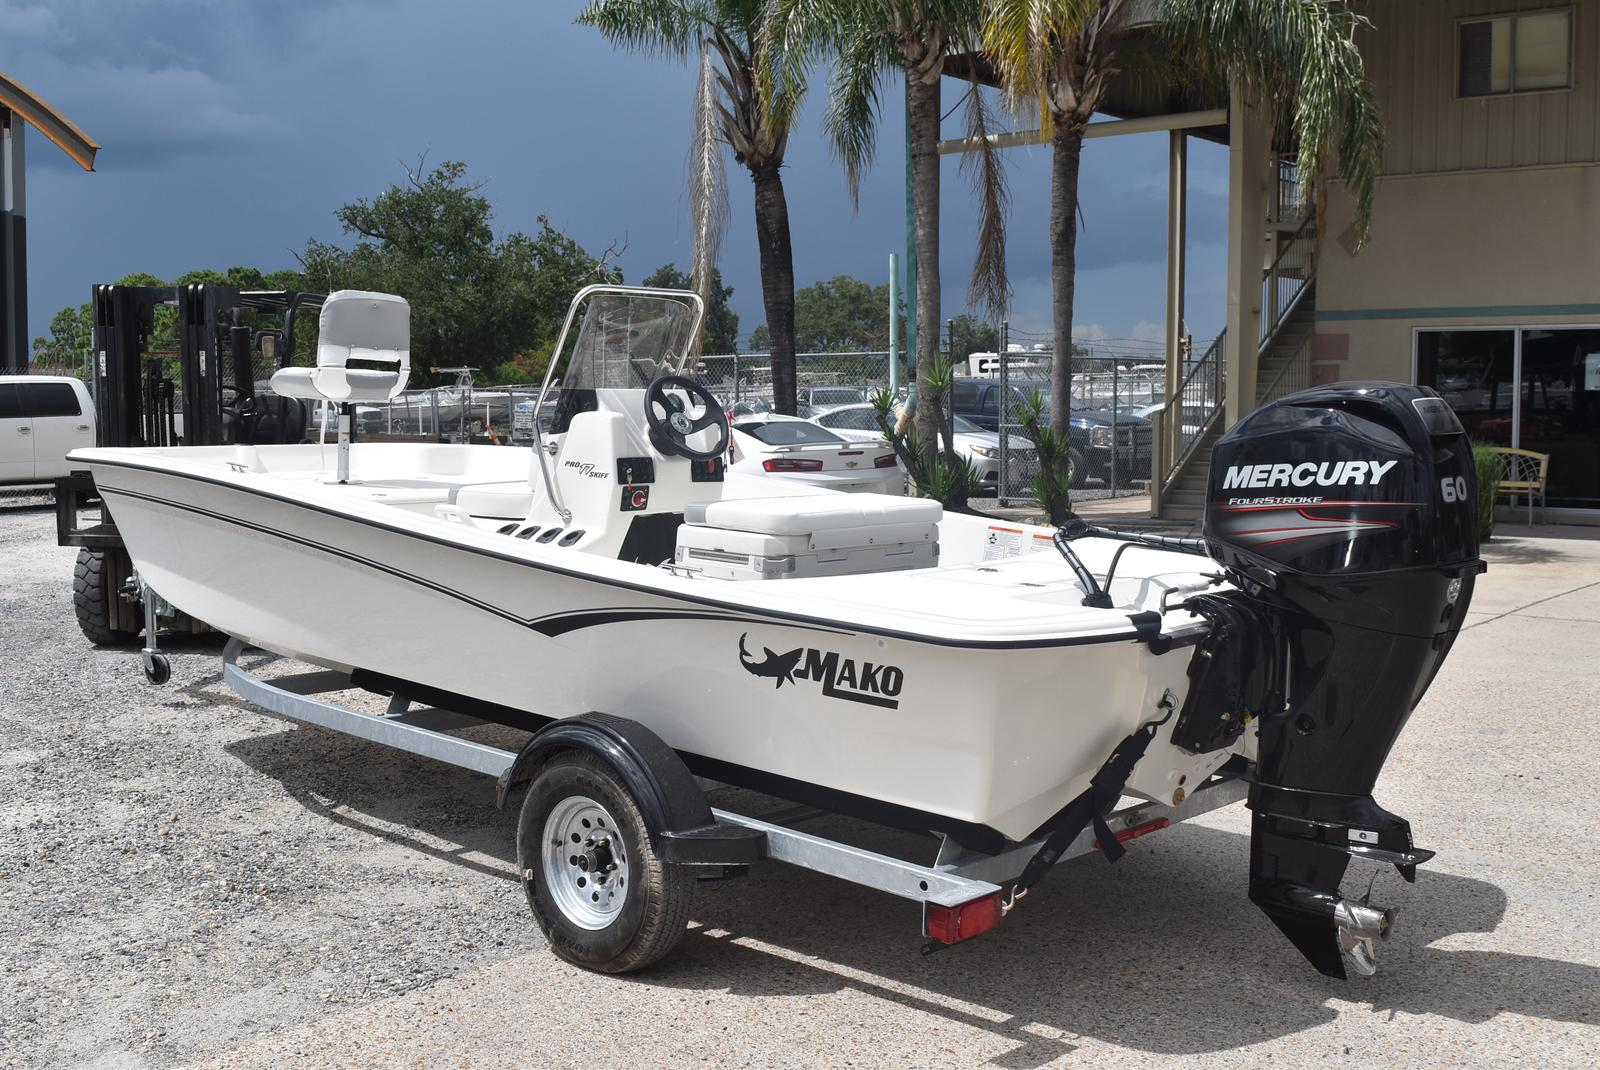 2020 Mako boat for sale, model of the boat is Pro Skiff 17, 75 ELPT & Image # 192 of 702